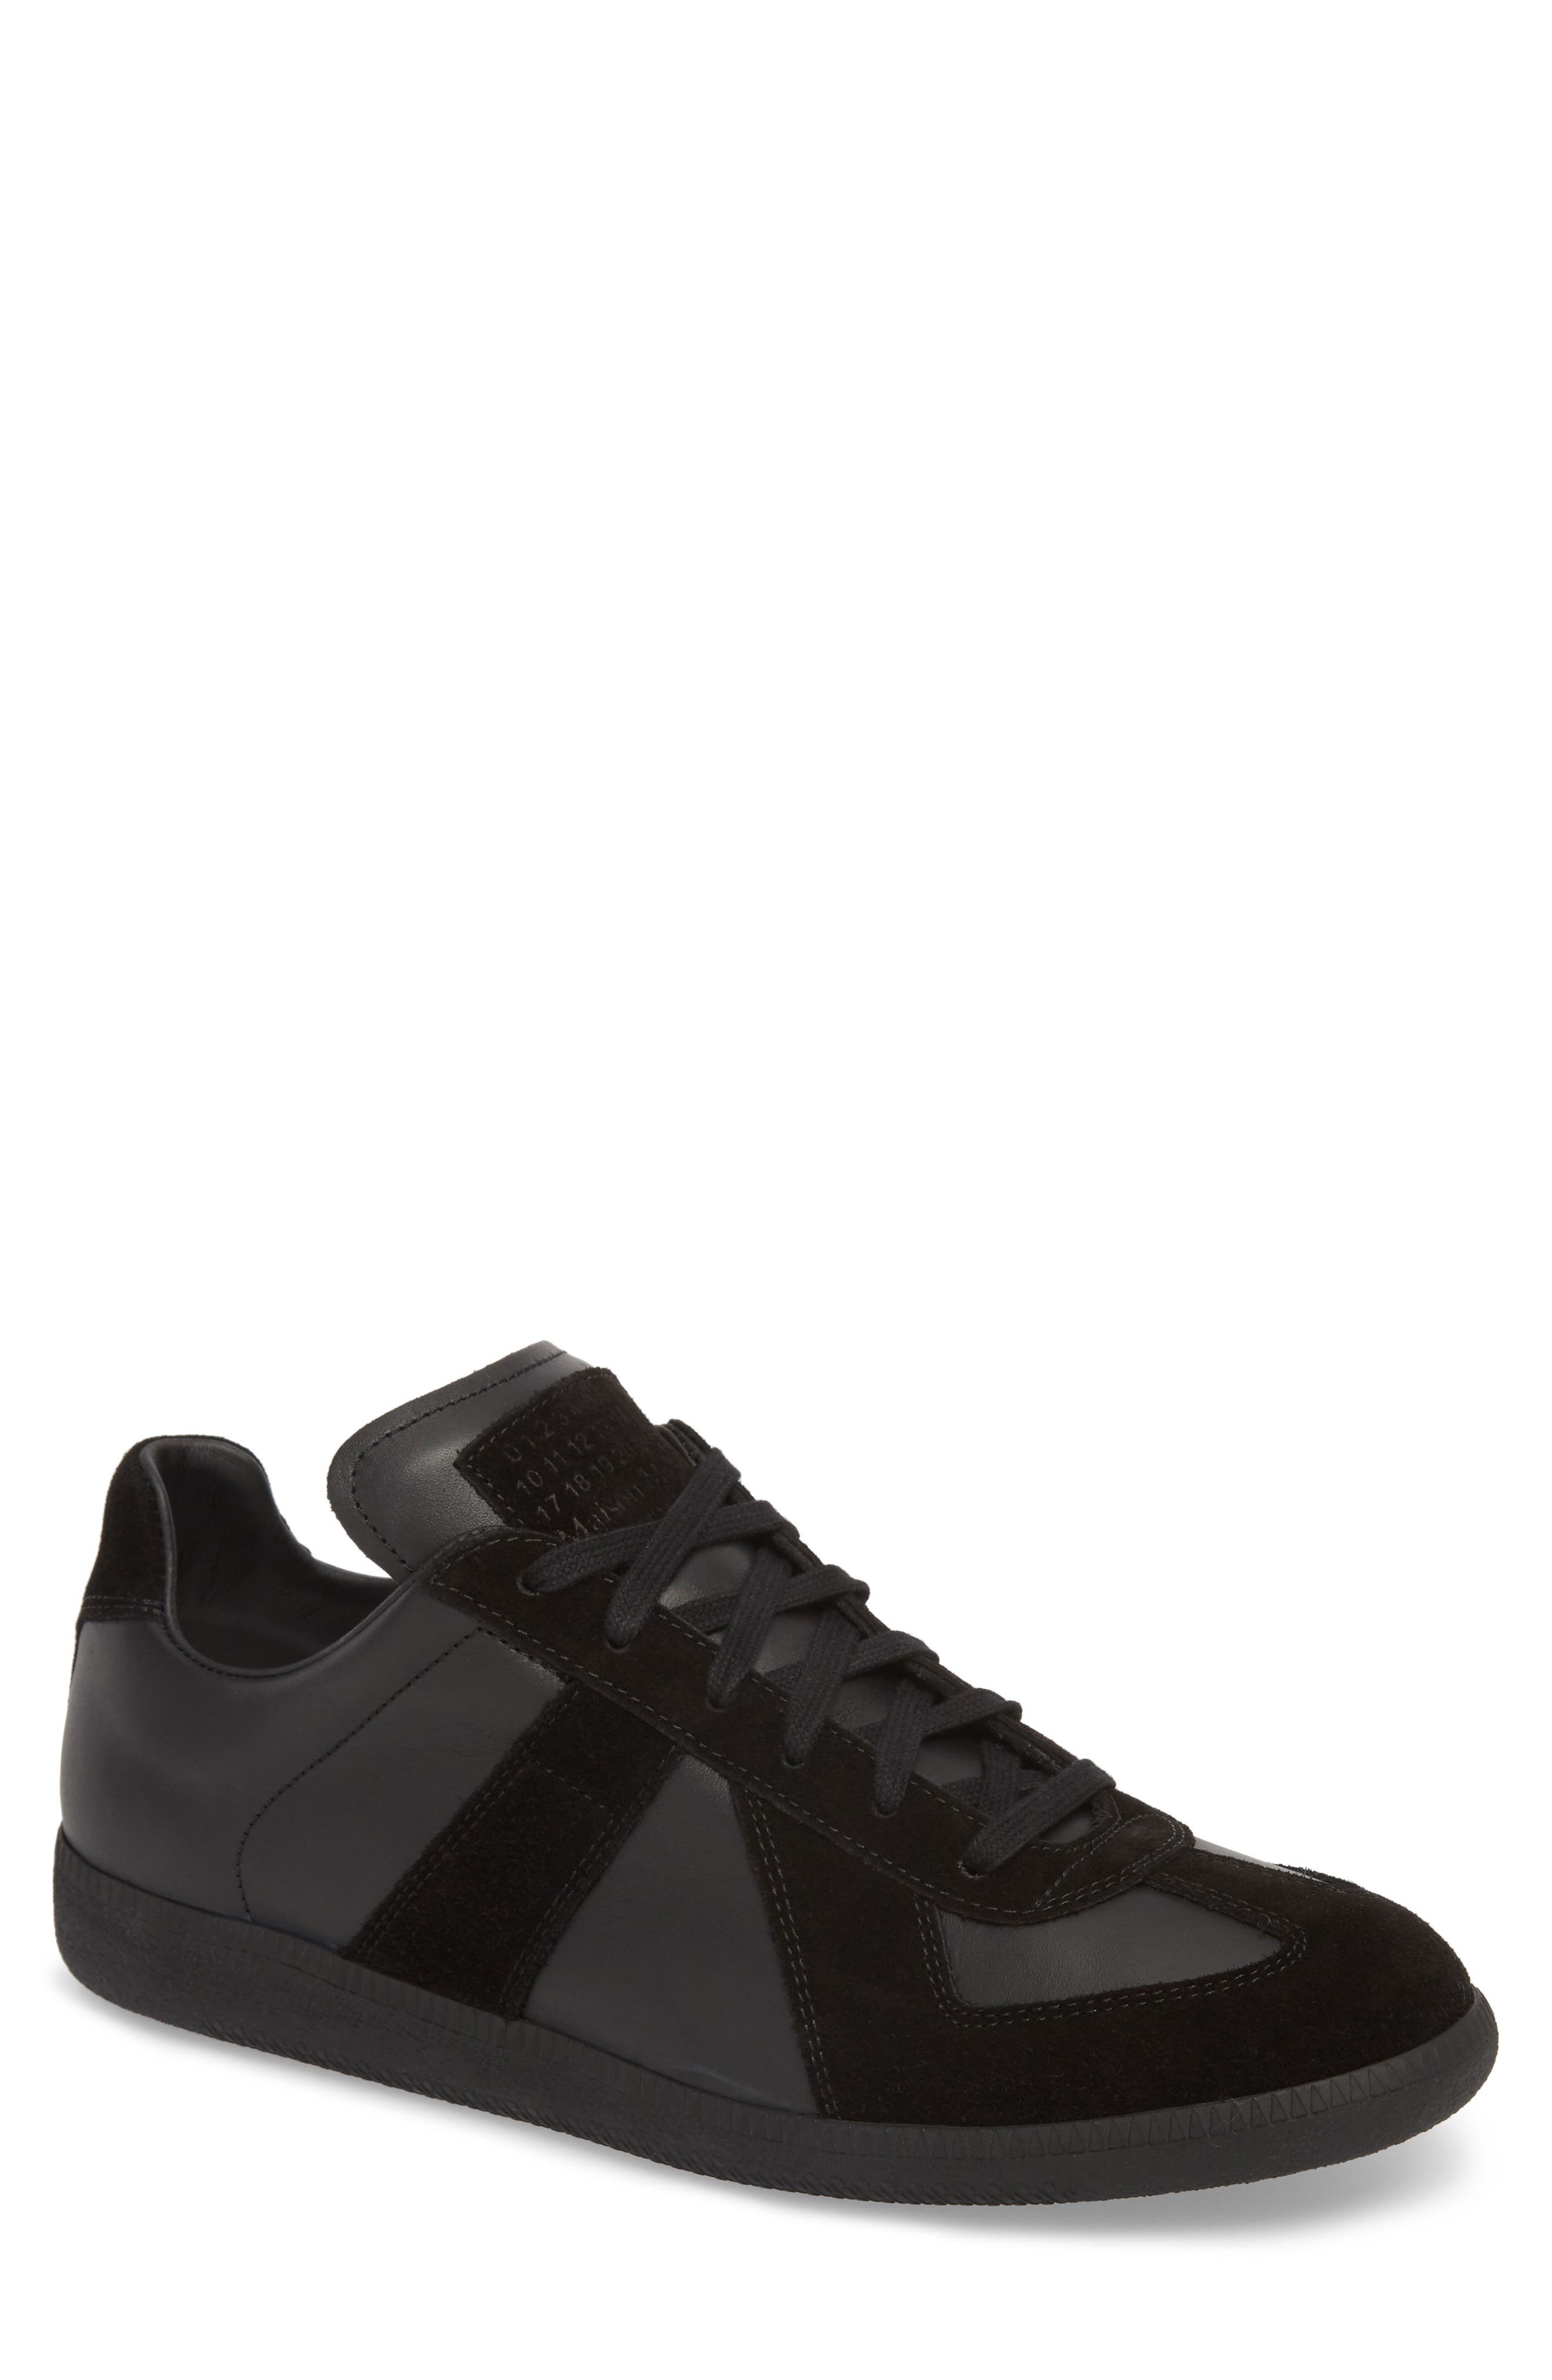 Maison Margiela Replica Low Top Sneaker,                             Main thumbnail 1, color,                             BLACK